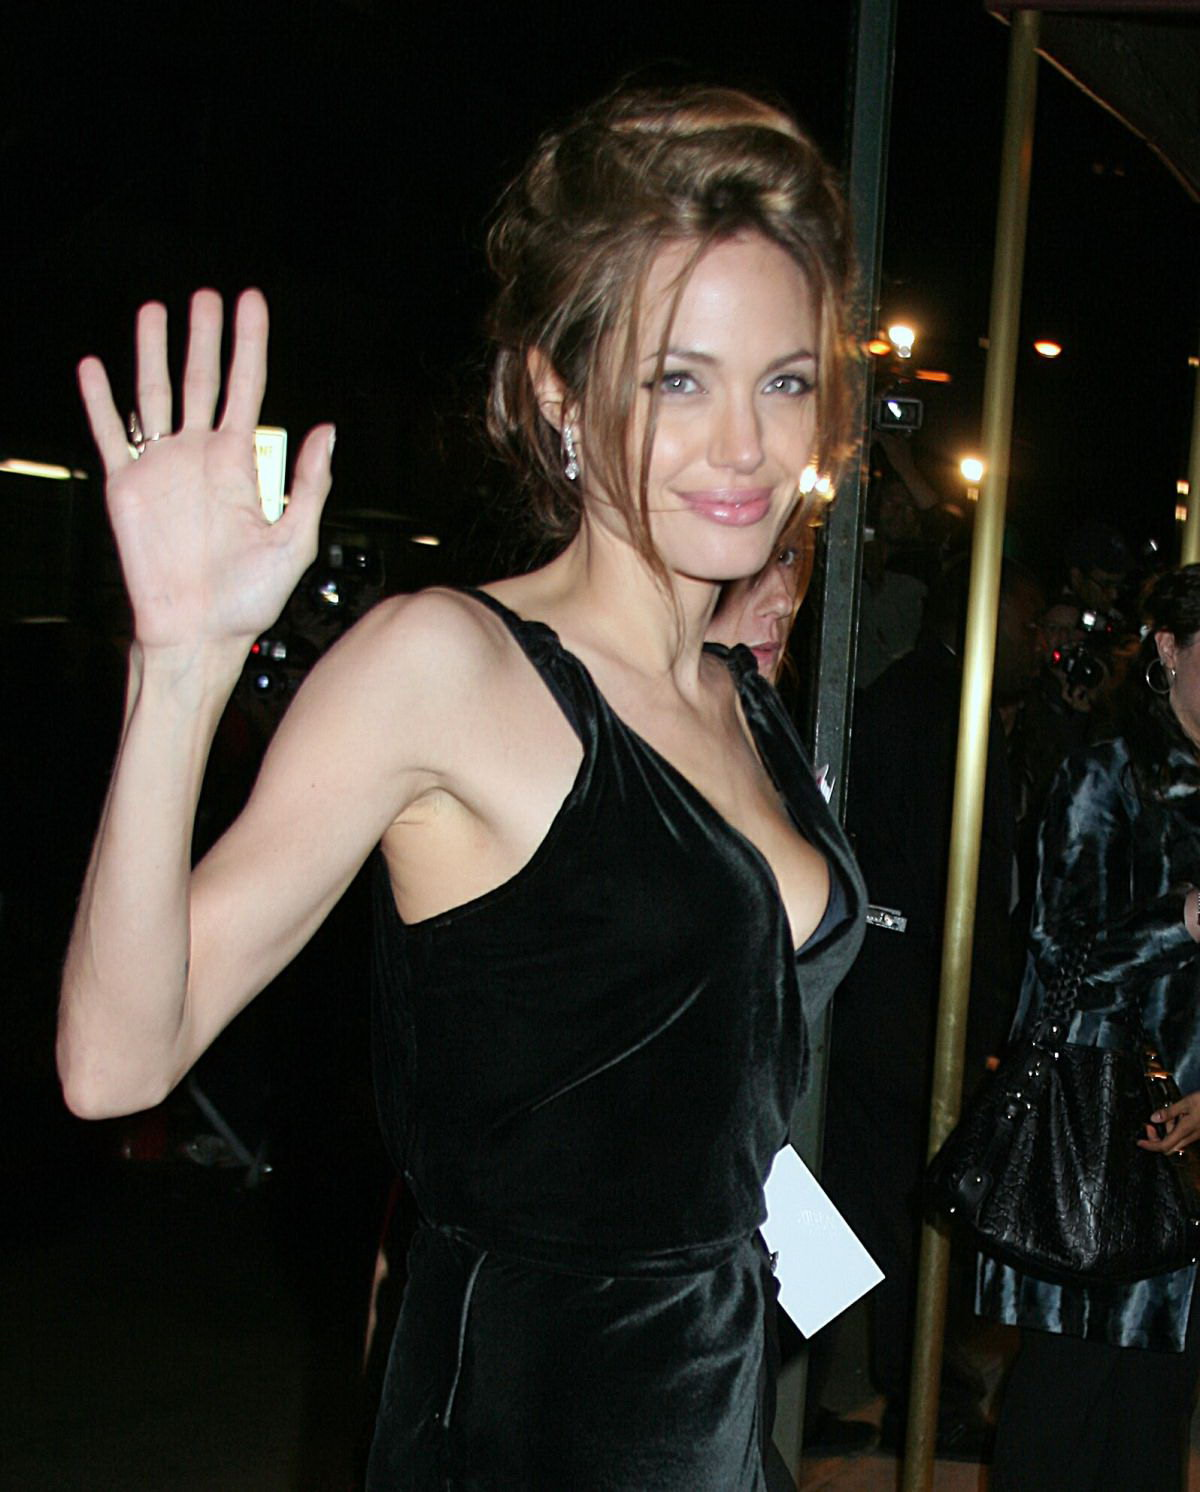 Angelina jolie cyborg topless compilation - 1 part 1